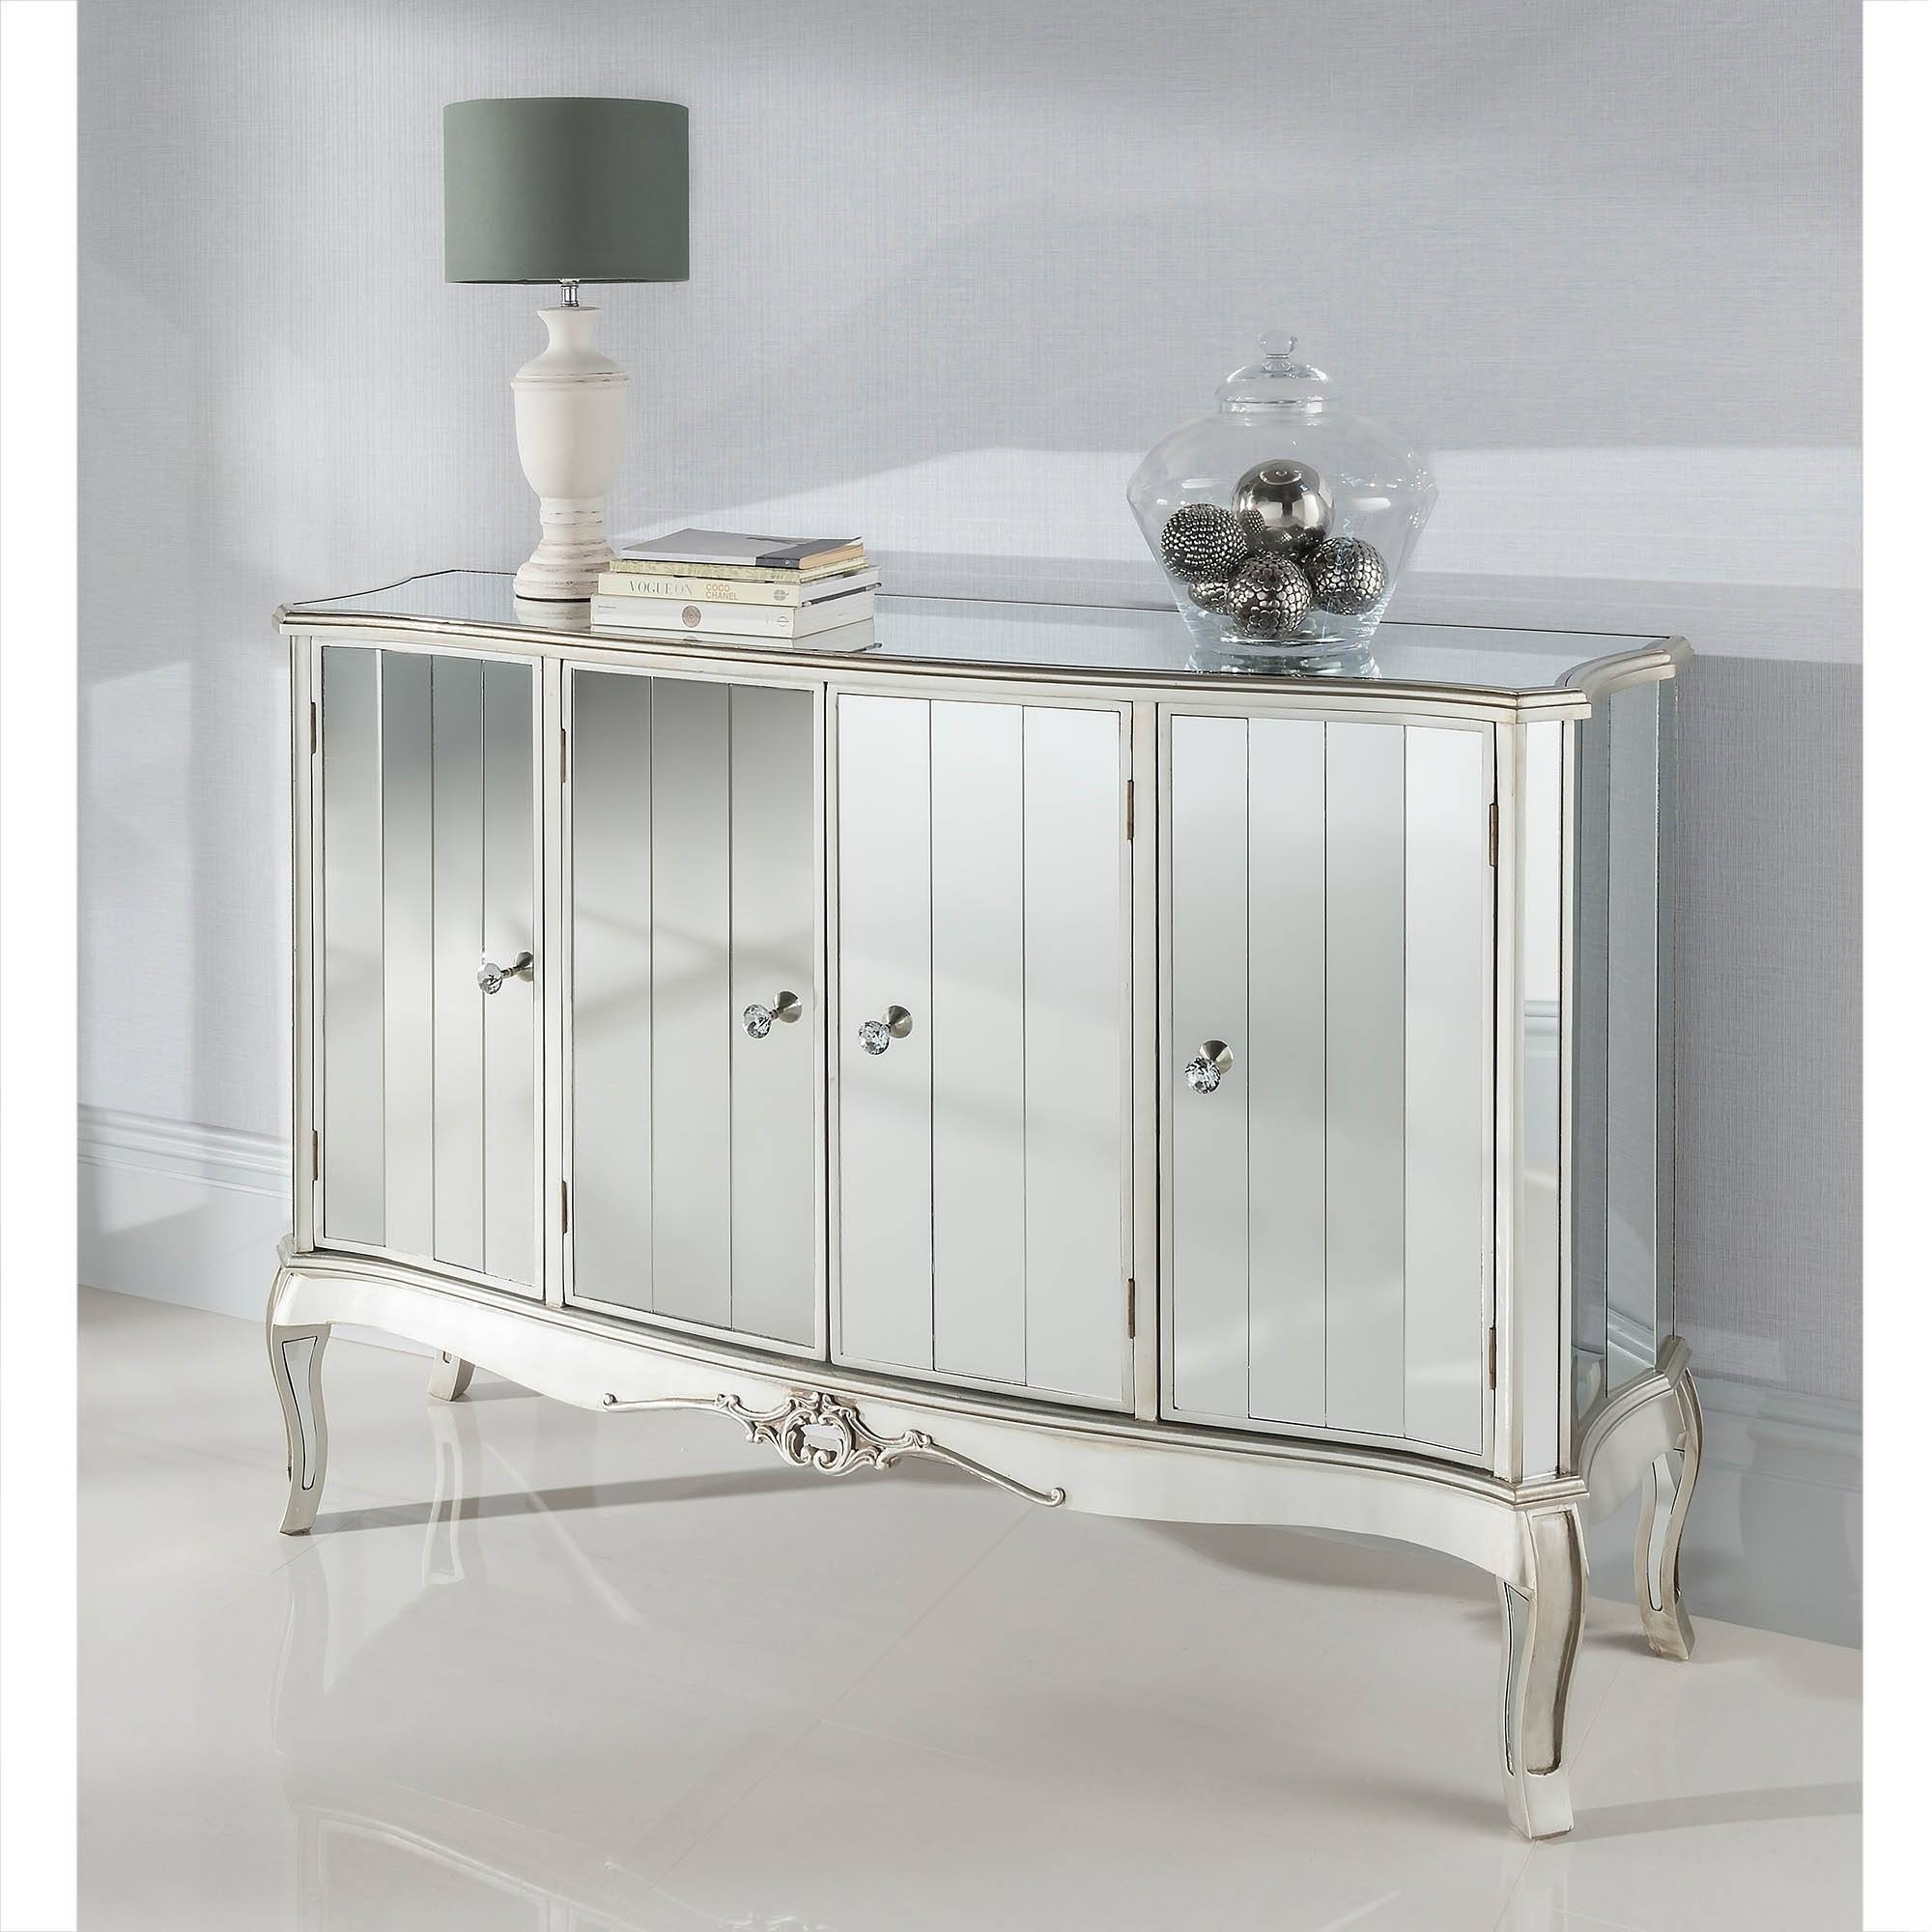 Argente Mirrored Four Door Sideboard | Mirrored Furniture Throughout Mirror Sideboards (View 9 of 15)